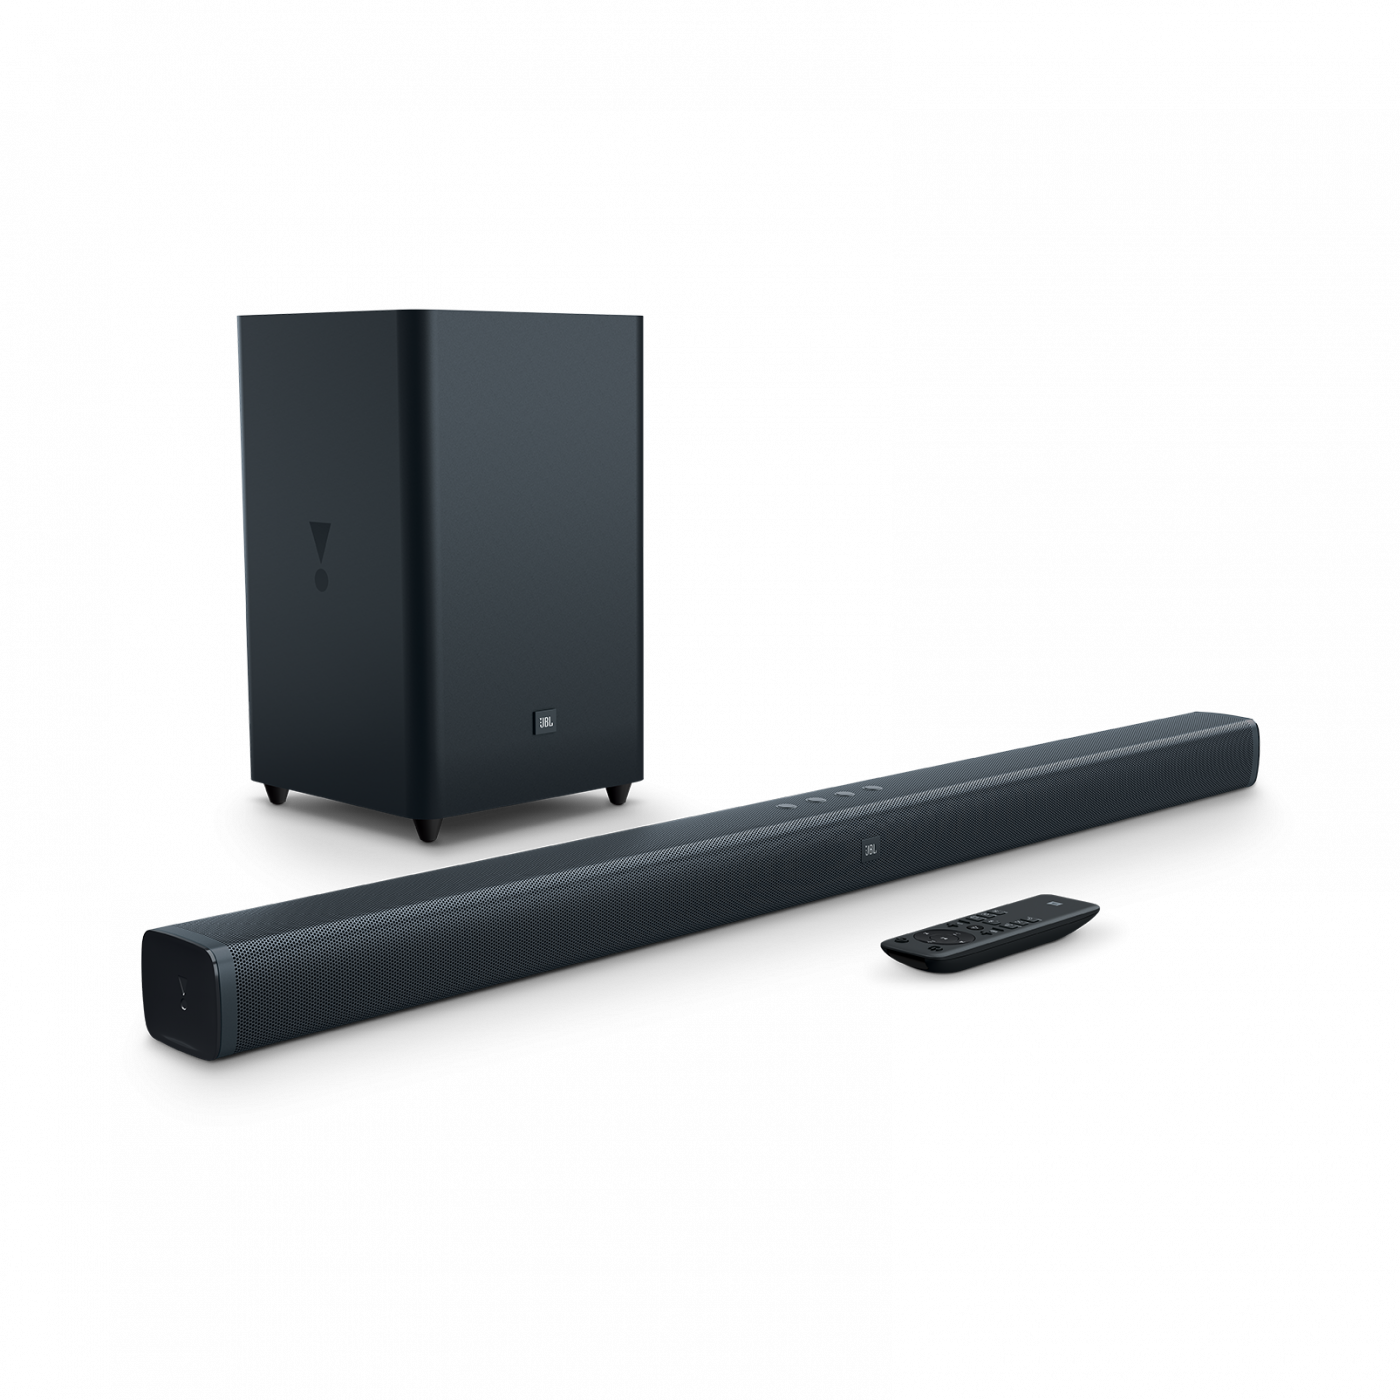 JBL 2.1 Channel Soundbar (Bar 2.1).